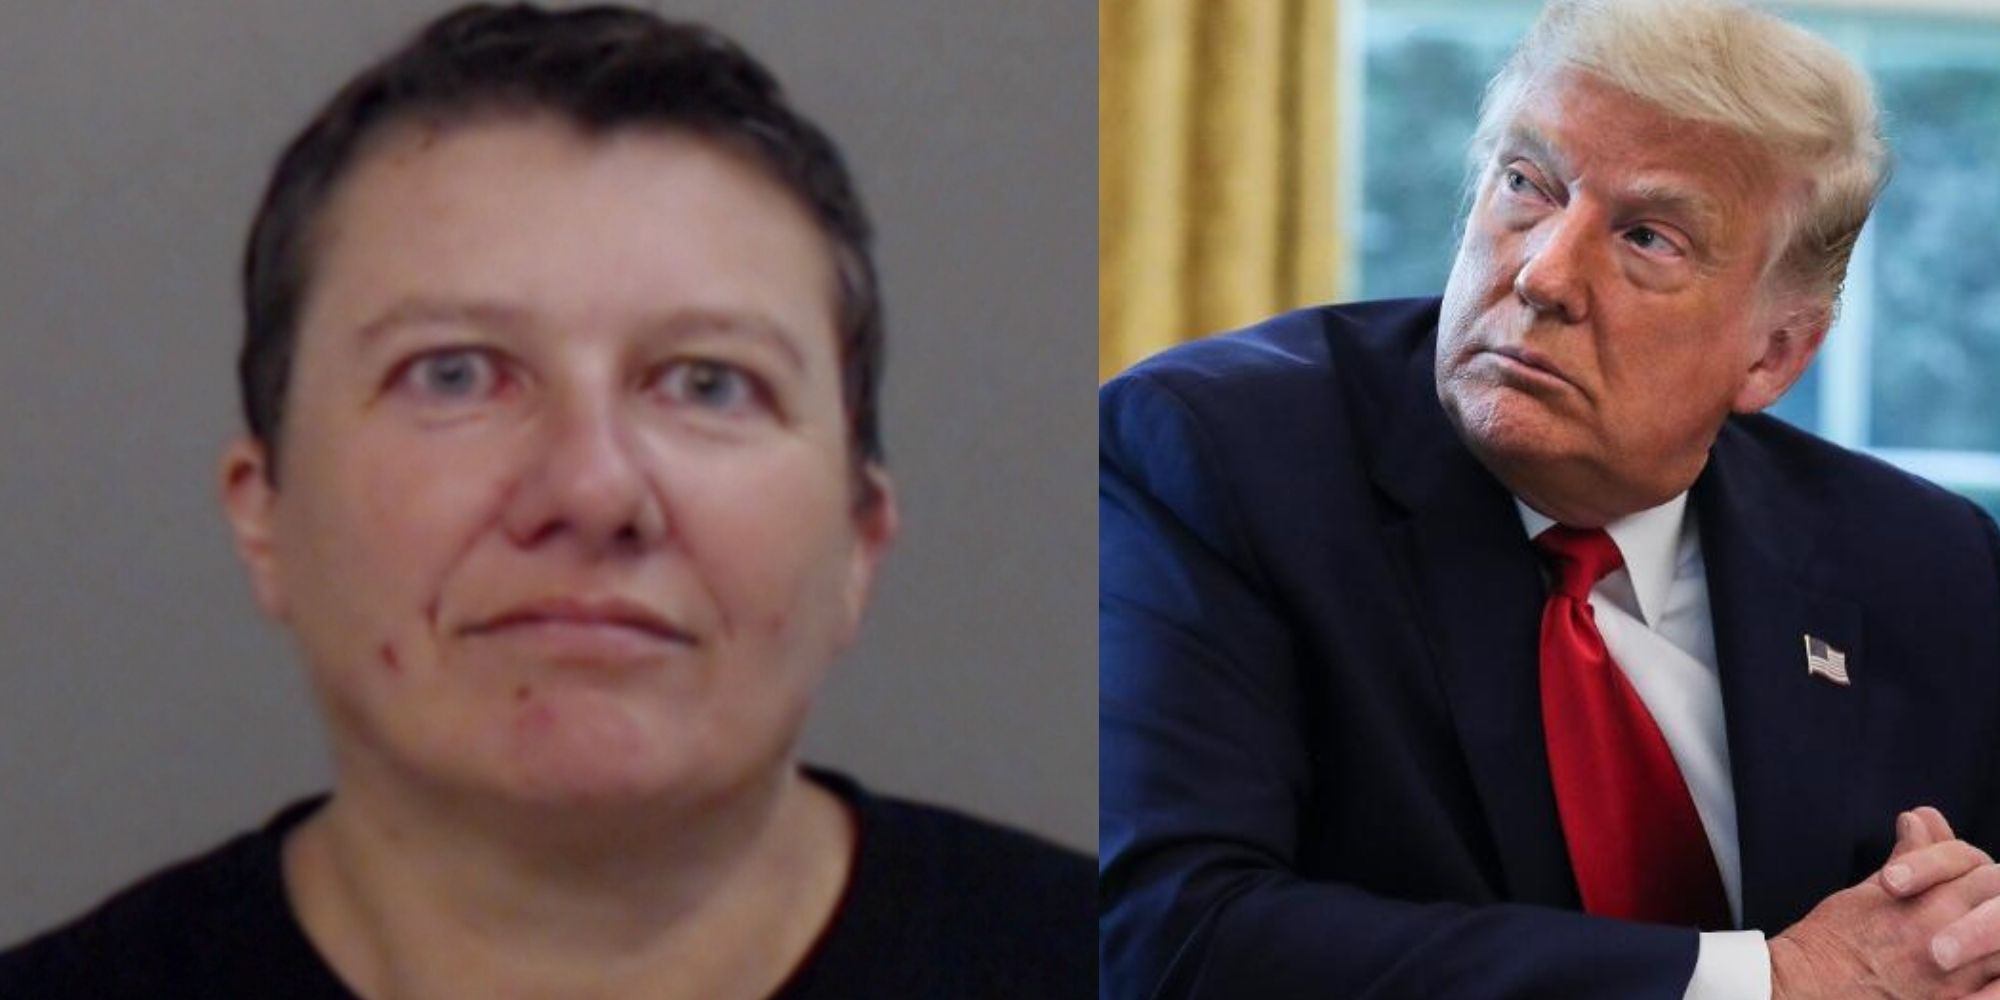 Details emerge about the Quebec woman alleged to have mailed a poison letter to Trump